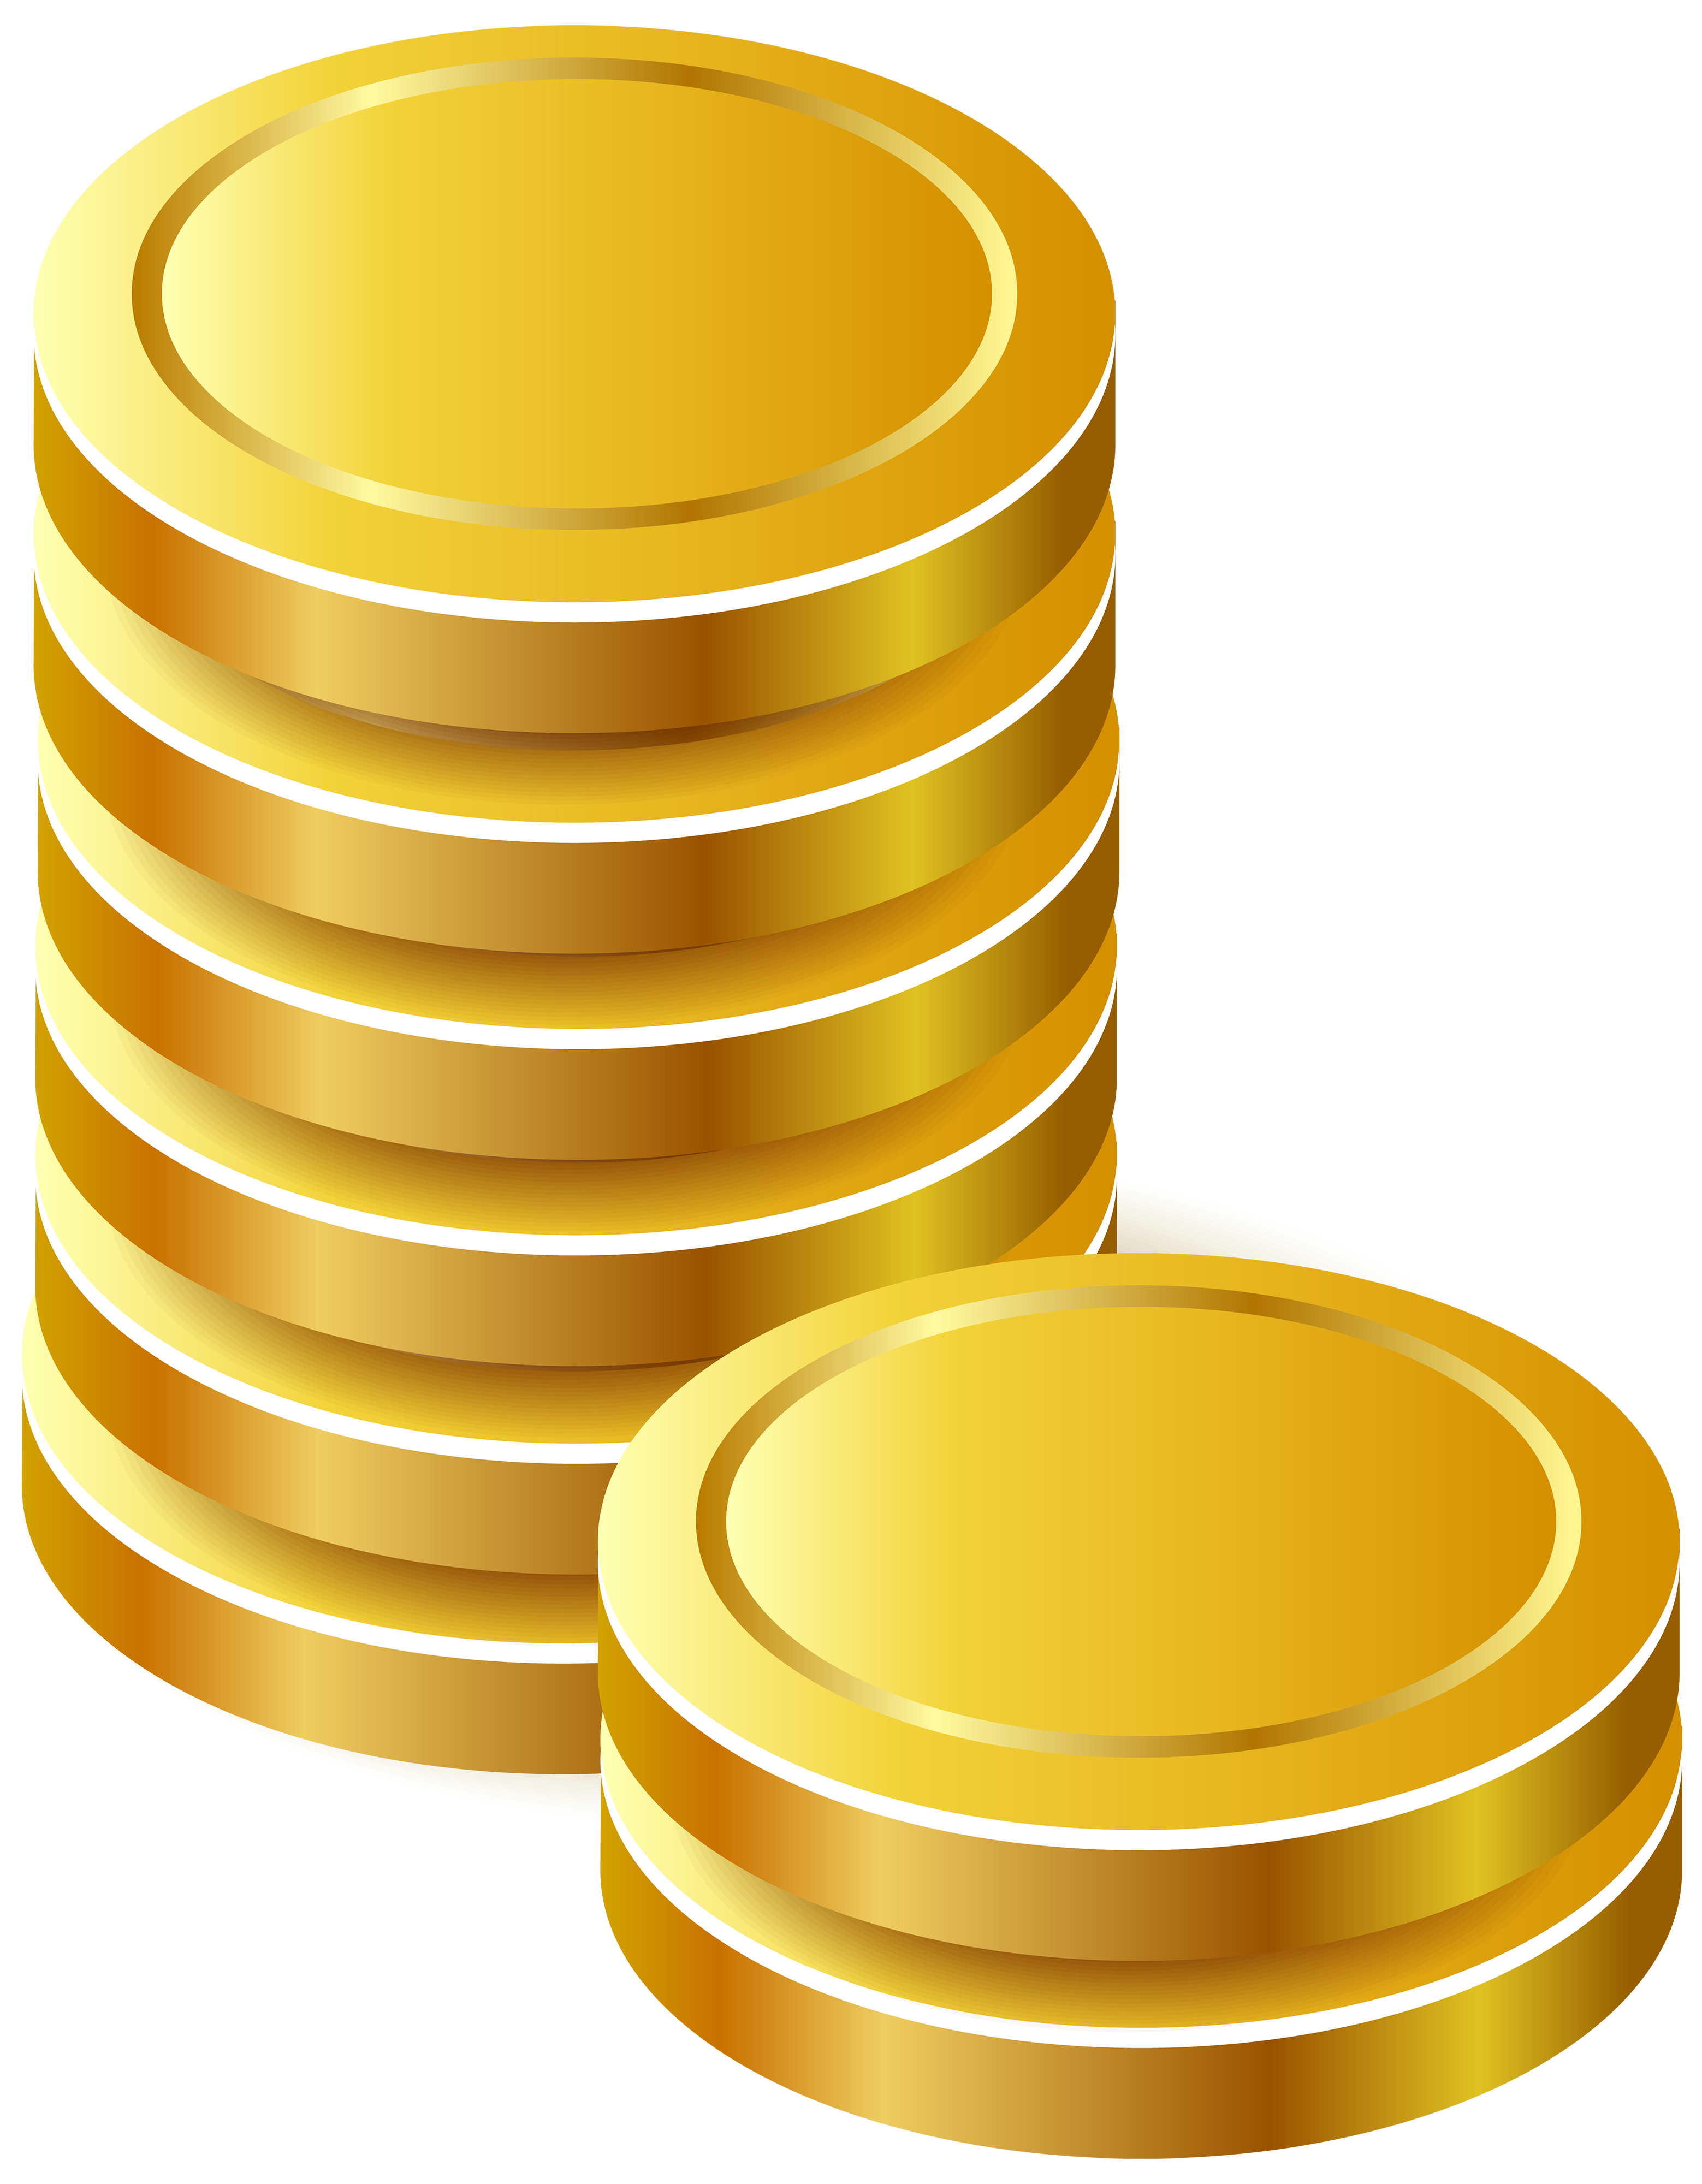 Gold Coins Png Image Gold Coins Gold Clipart Gold